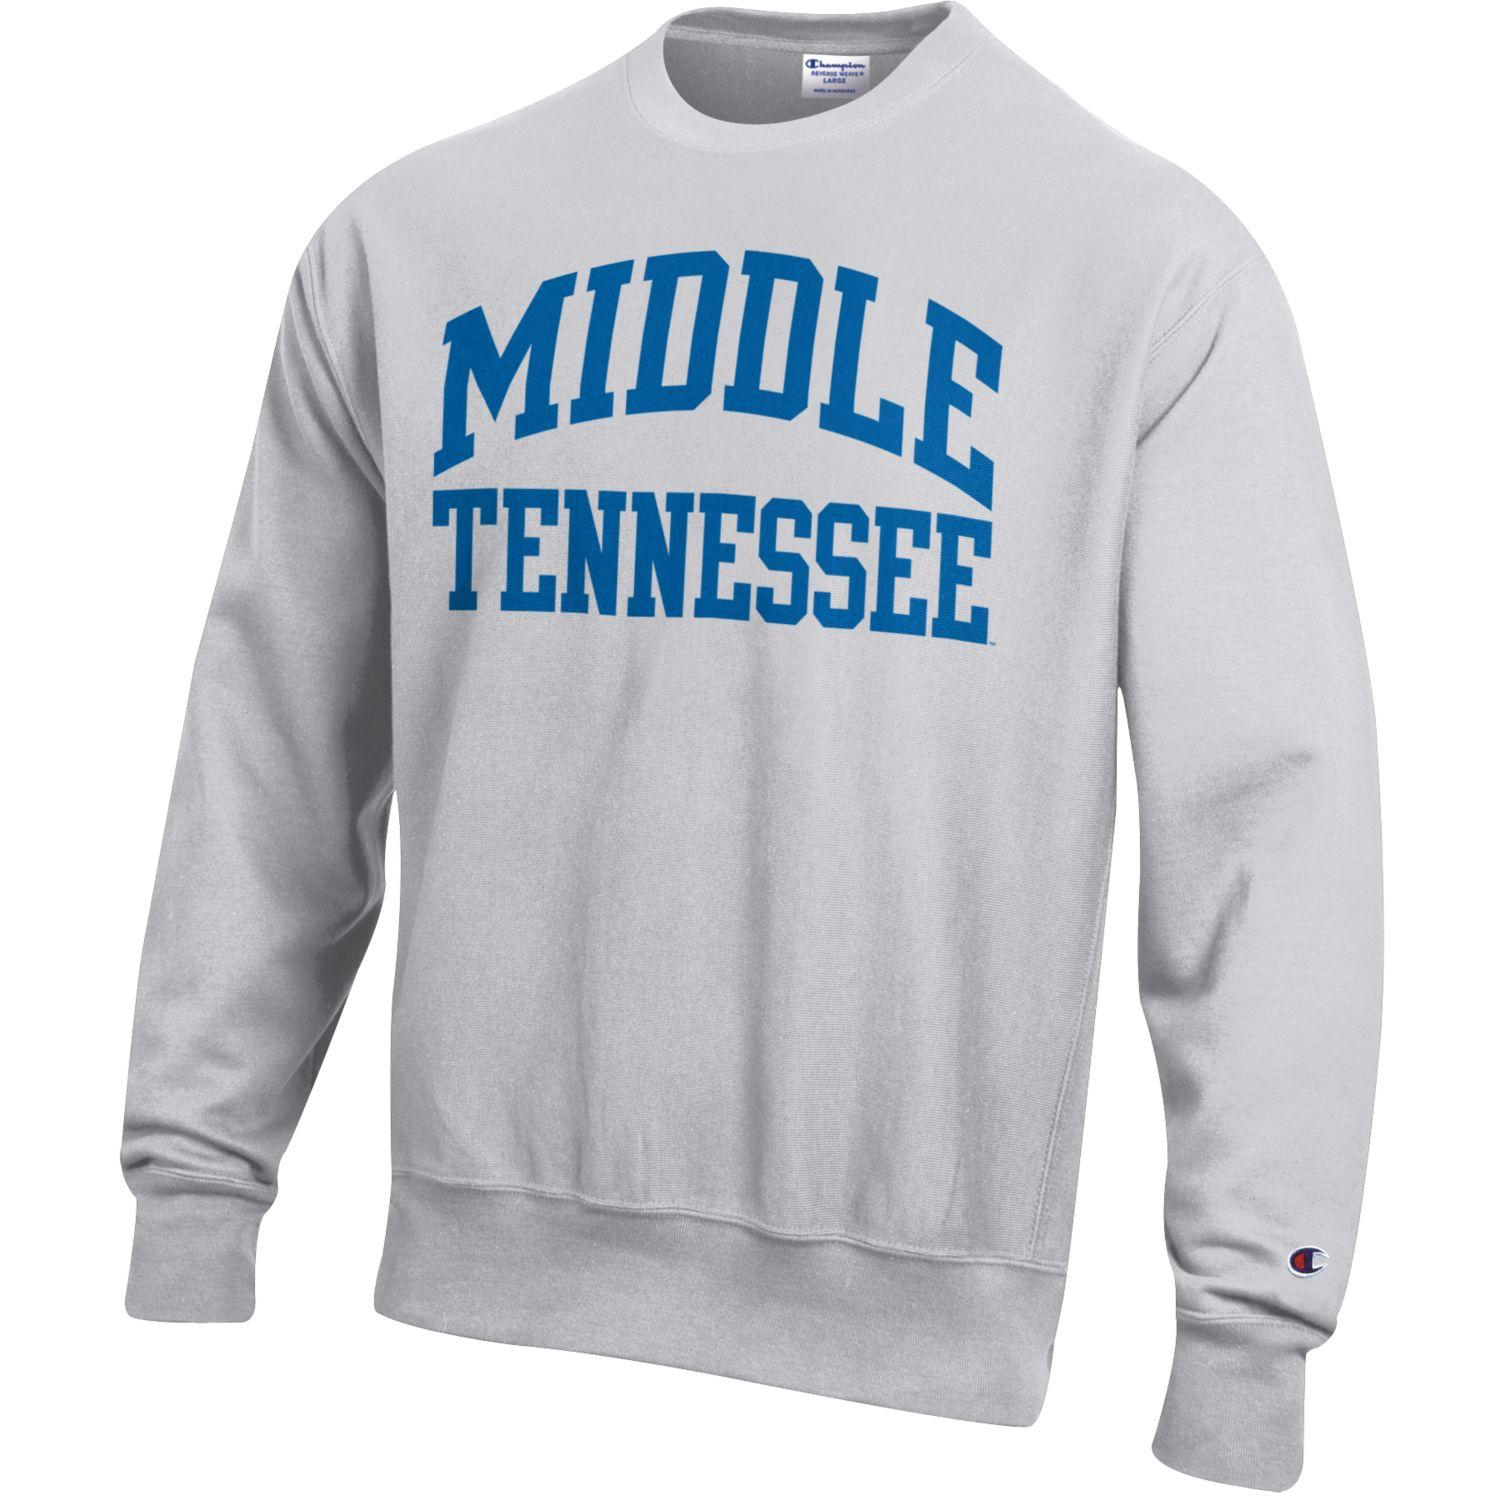 Middle Tennessee Reverse Weave Crewneck Sweatshirt